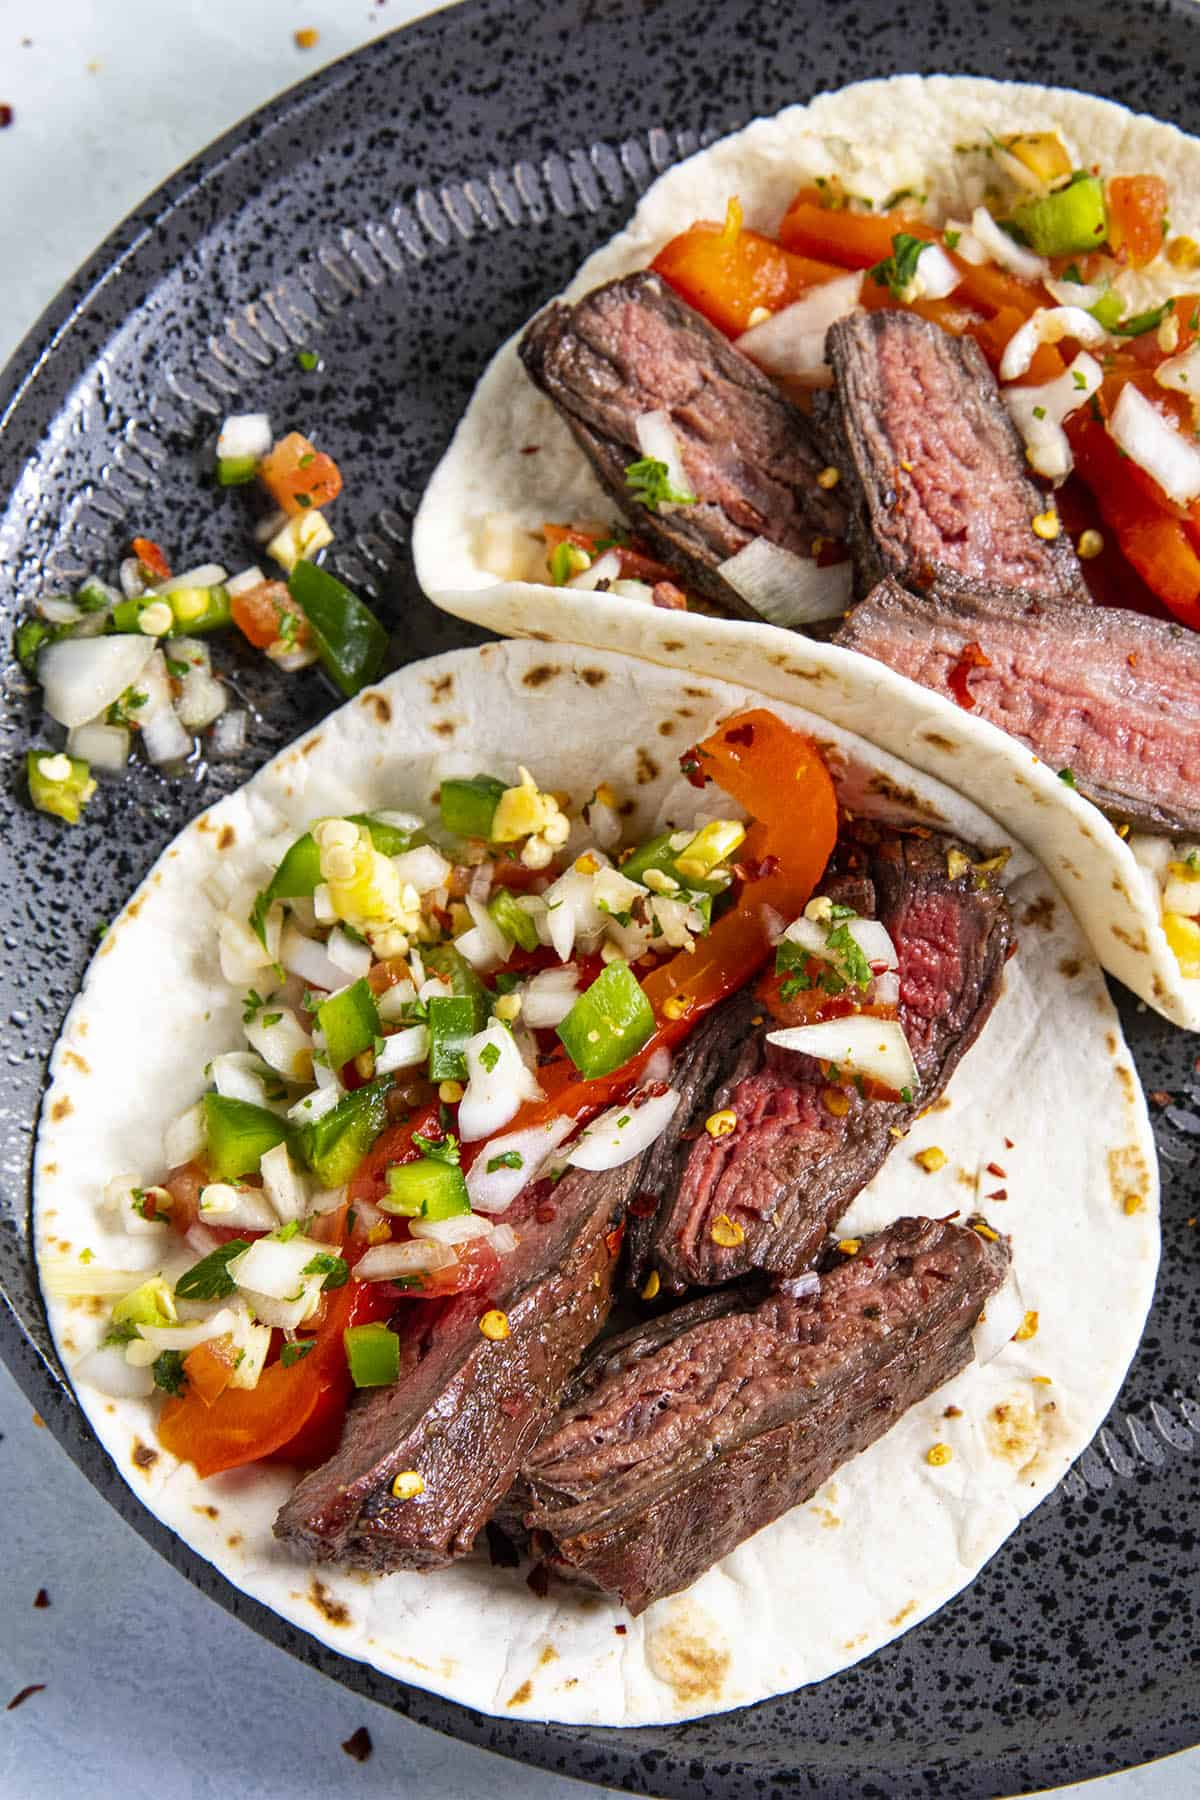 Two charcoal grilled steak tacos with pico de gallo and grilled red pepper